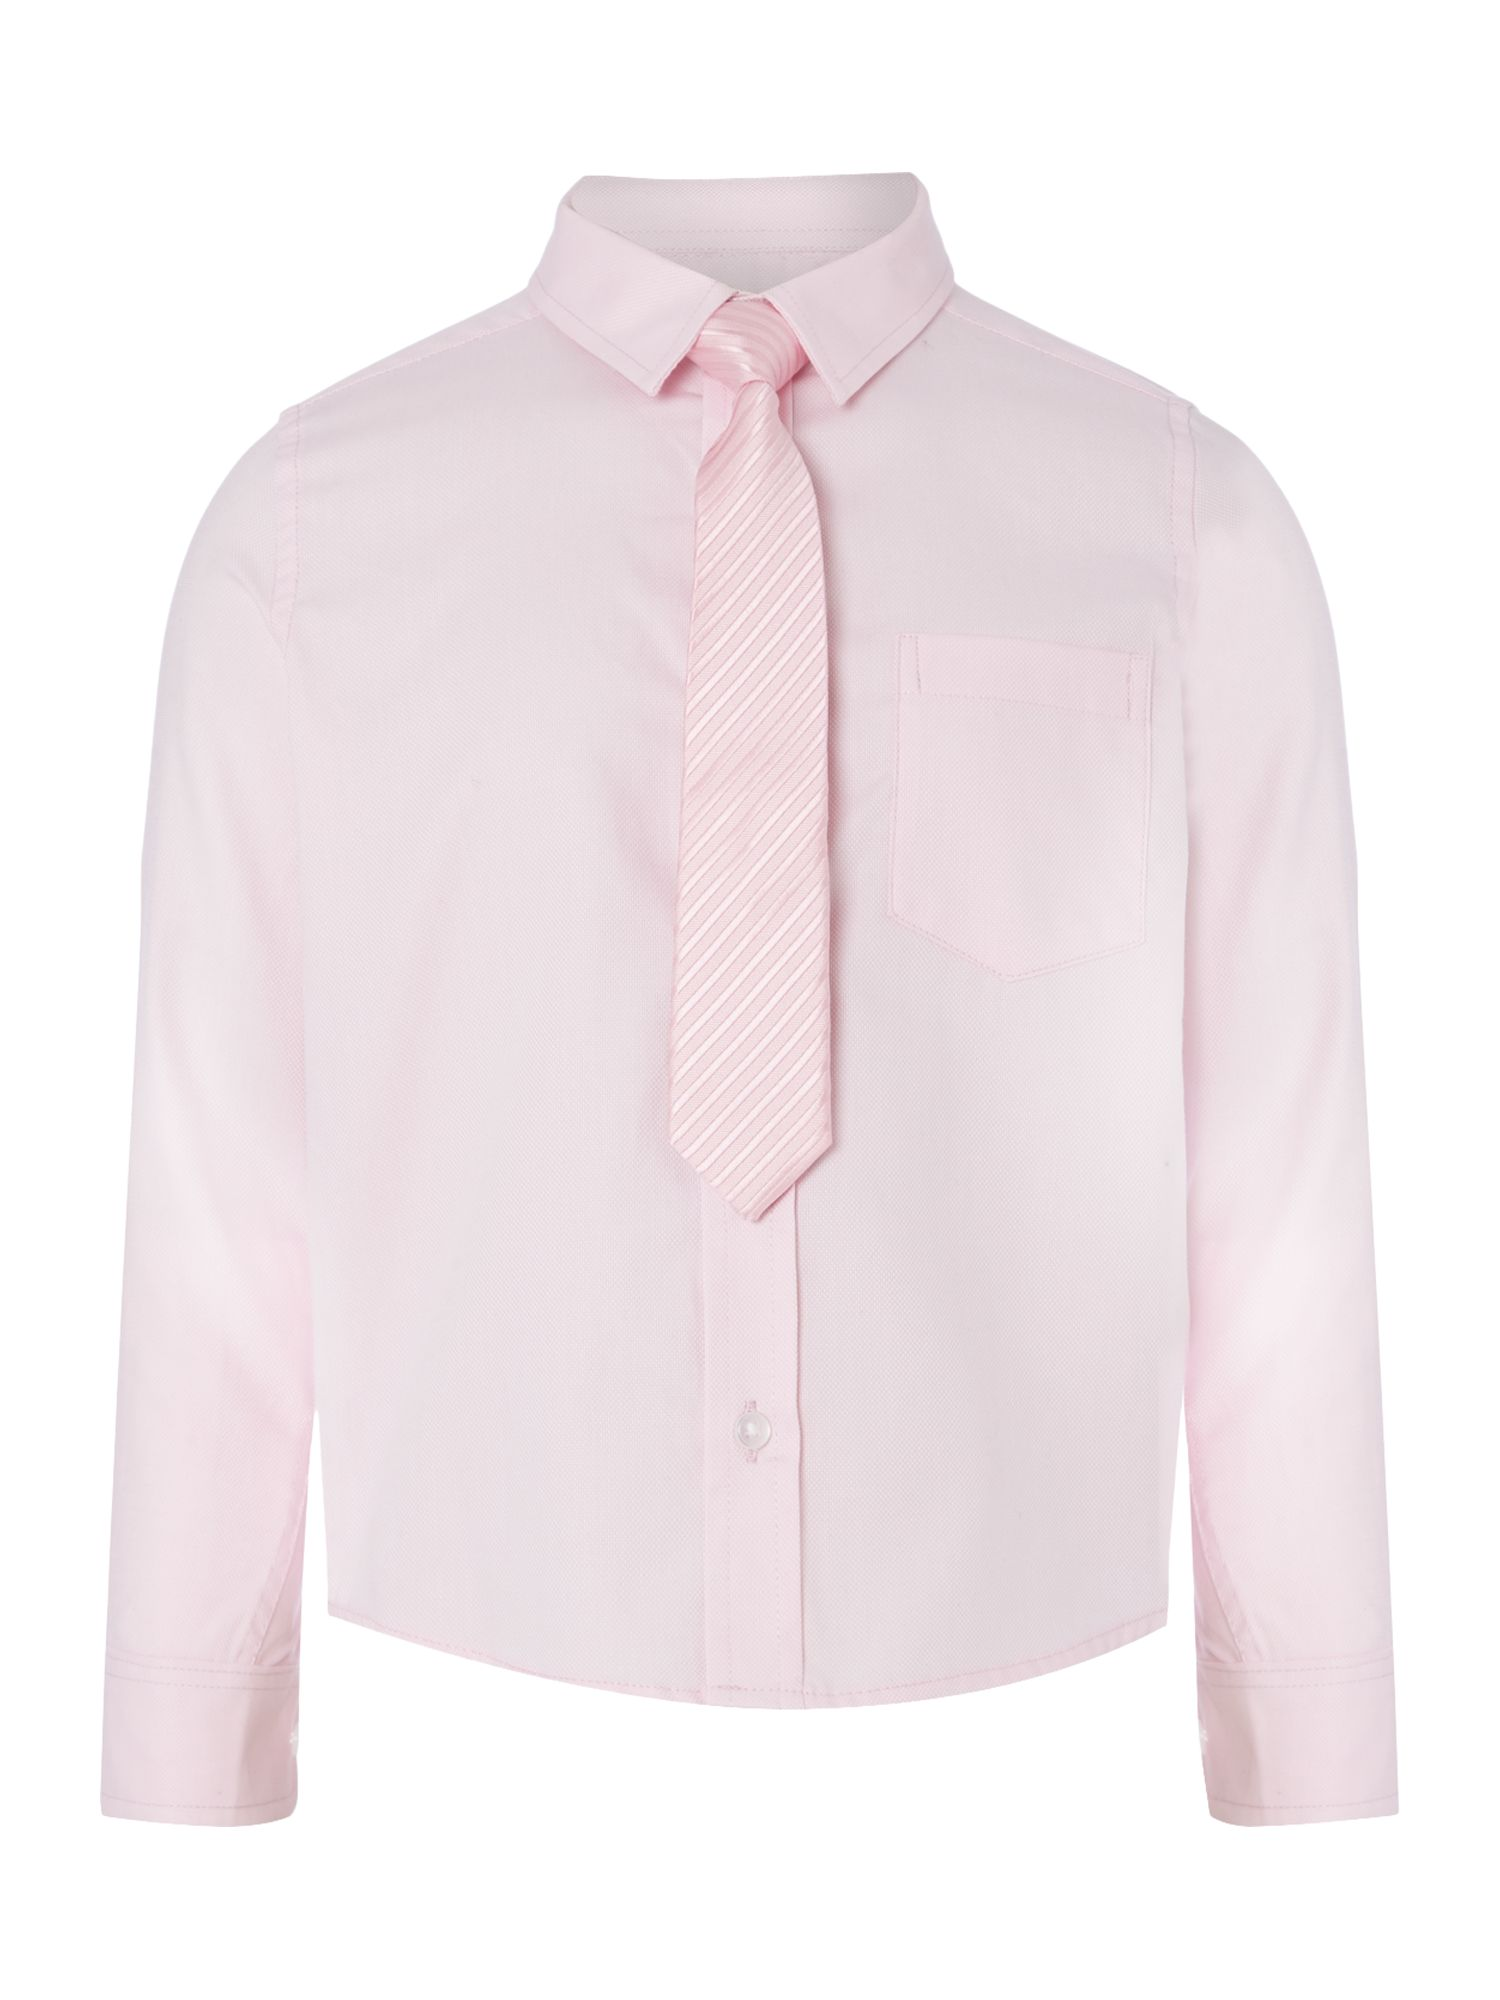 Howick Junior Howick Junior Boys long sleeved shirt with tie, Pink